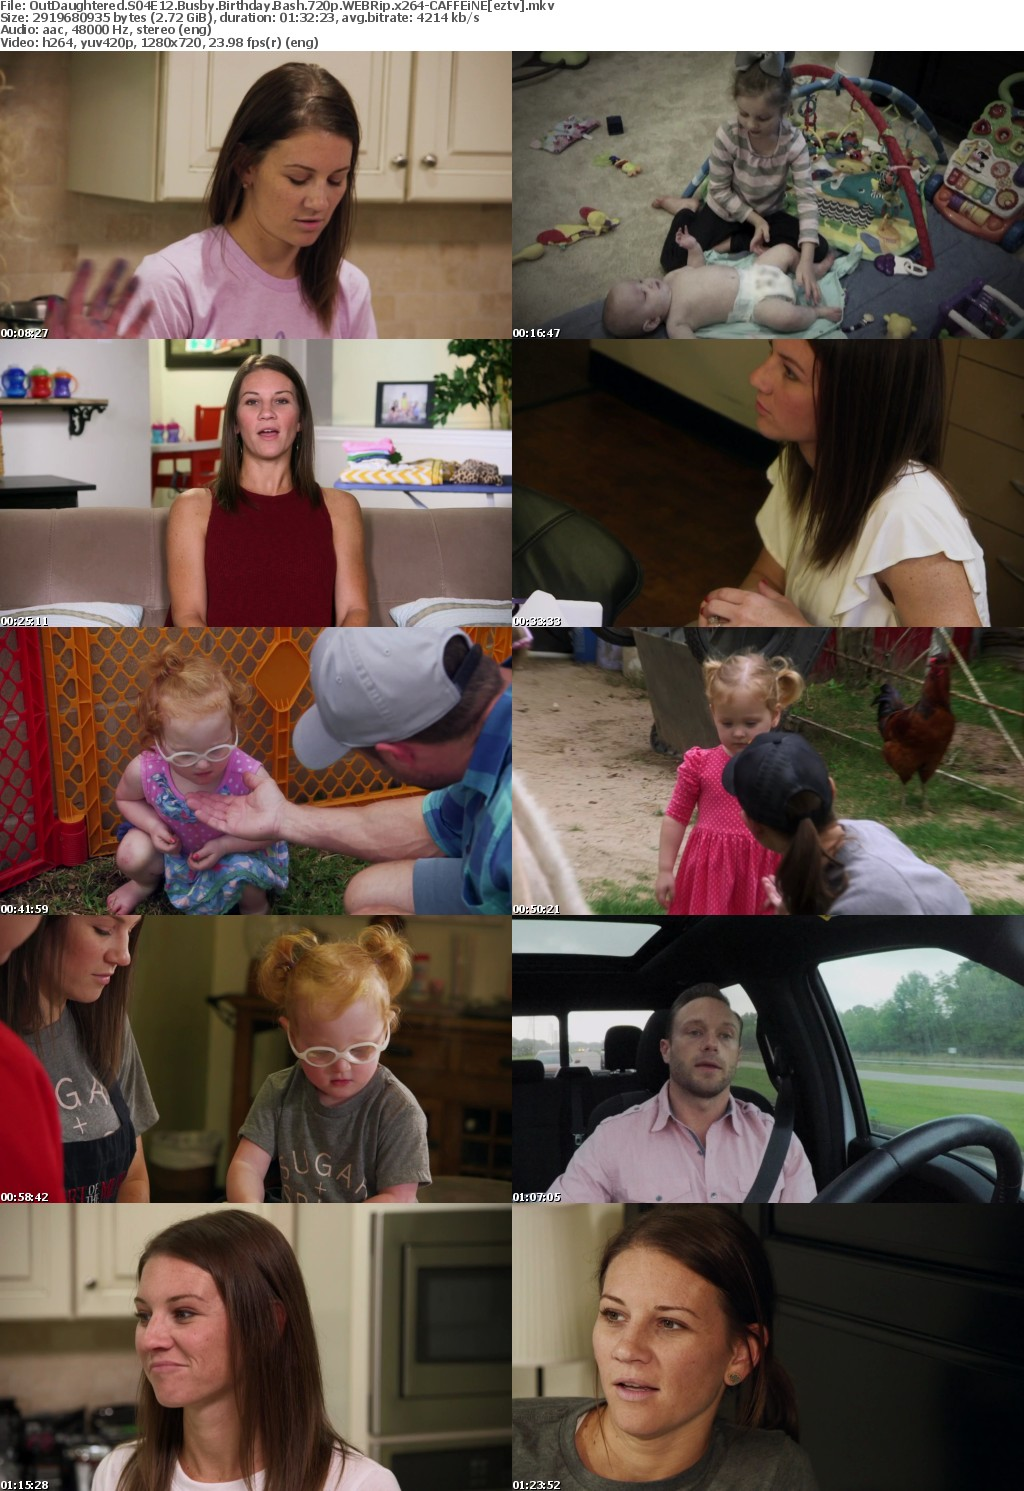 OutDaughtered S04E12 Busby Birthday Bash 720p WEBRip x264-CAFFEiNE